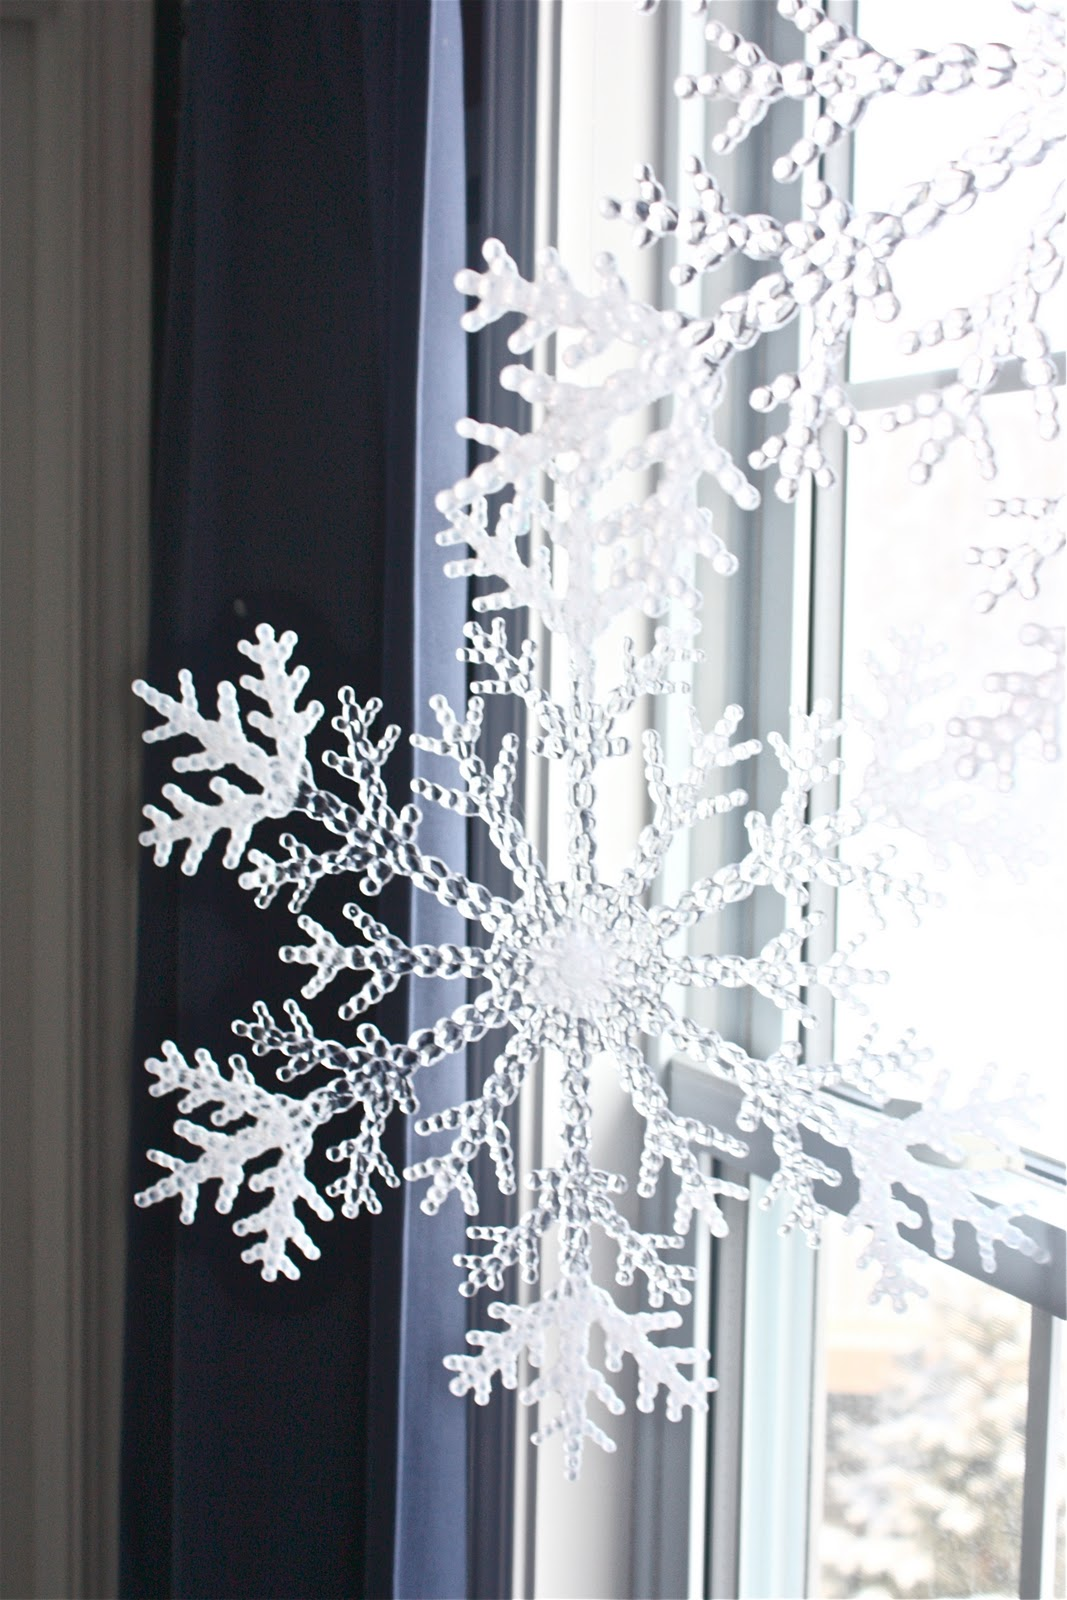 Christmas Decorations On Window : Cutest and easiest diy christmas window d?corations